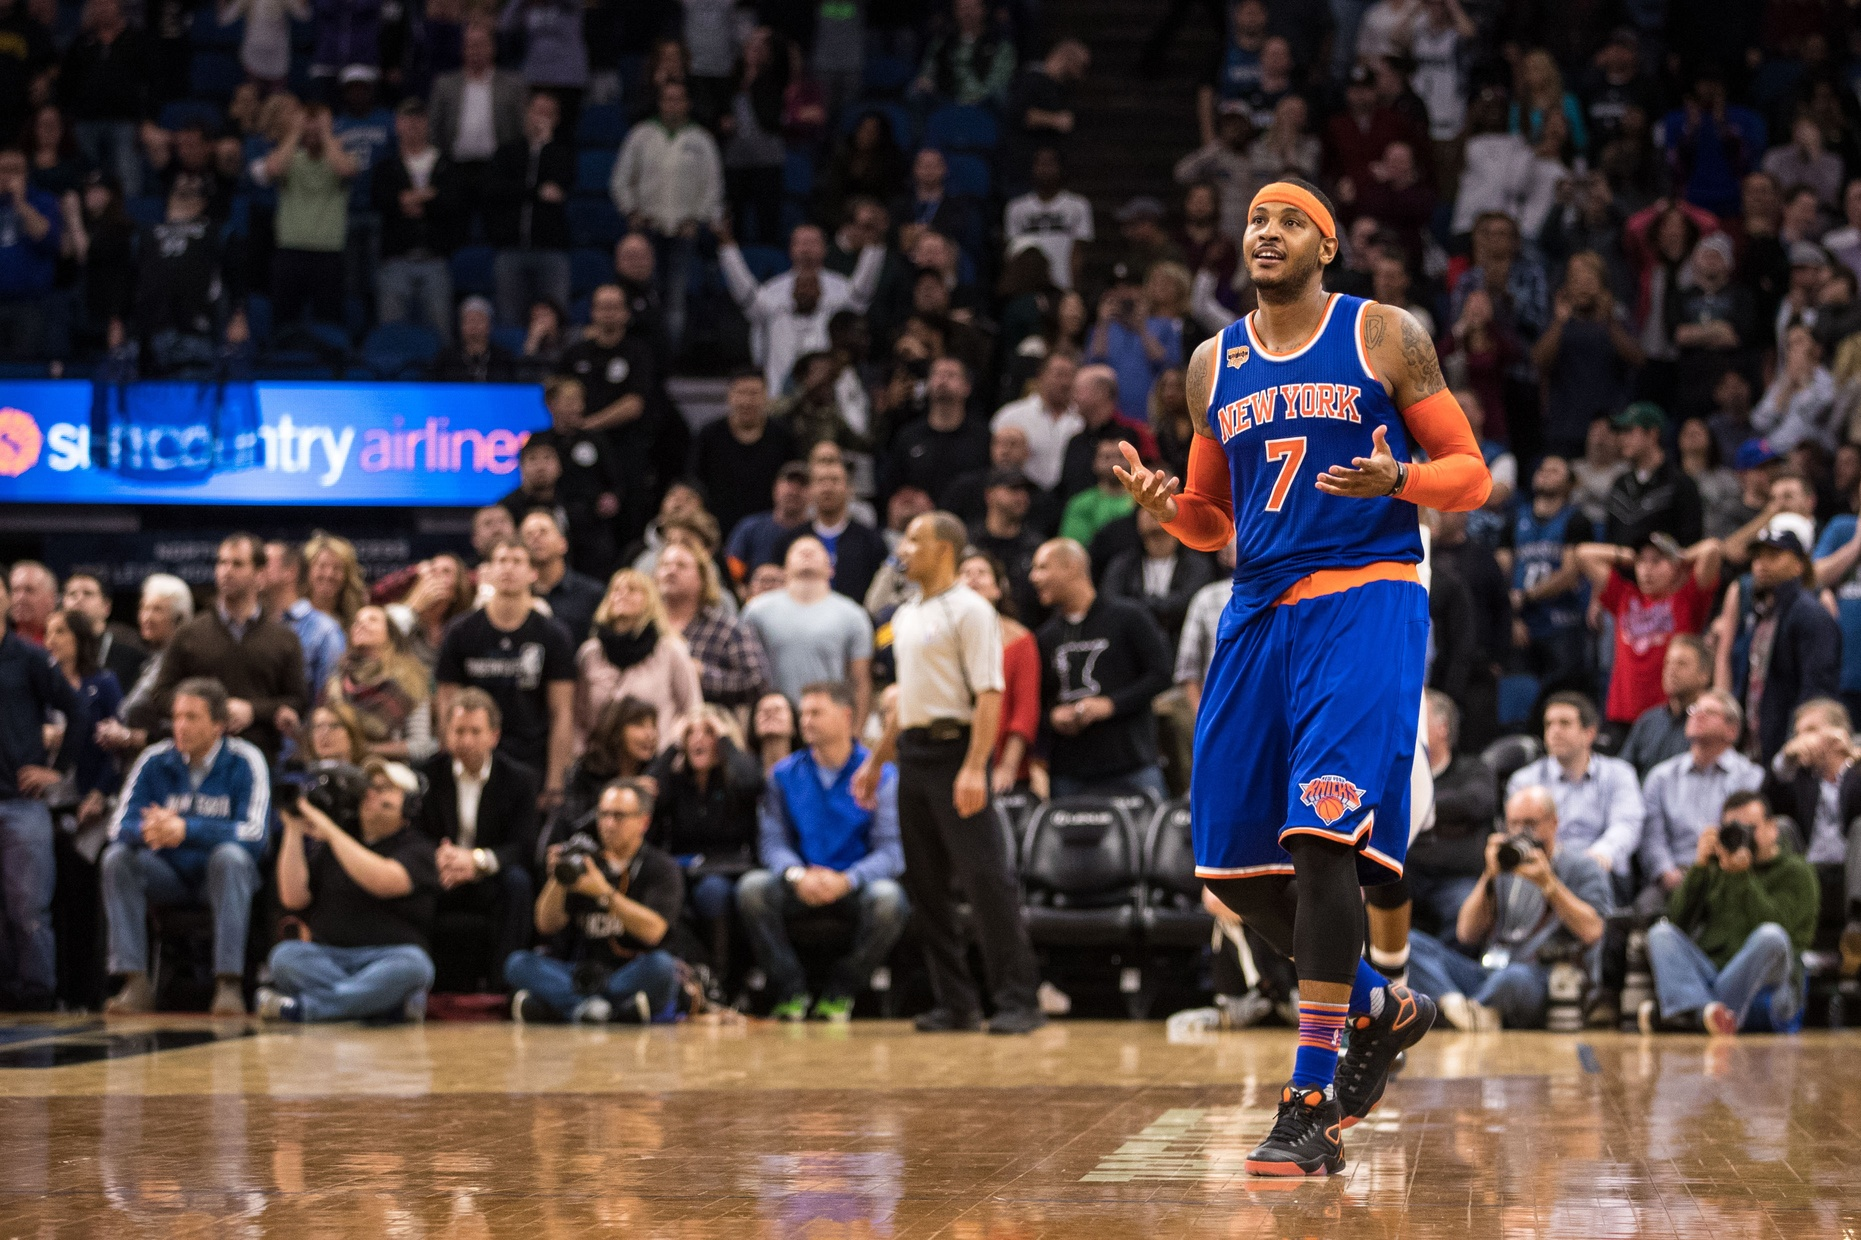 New York Knicks: Carmelo Anthony hits another game-winner